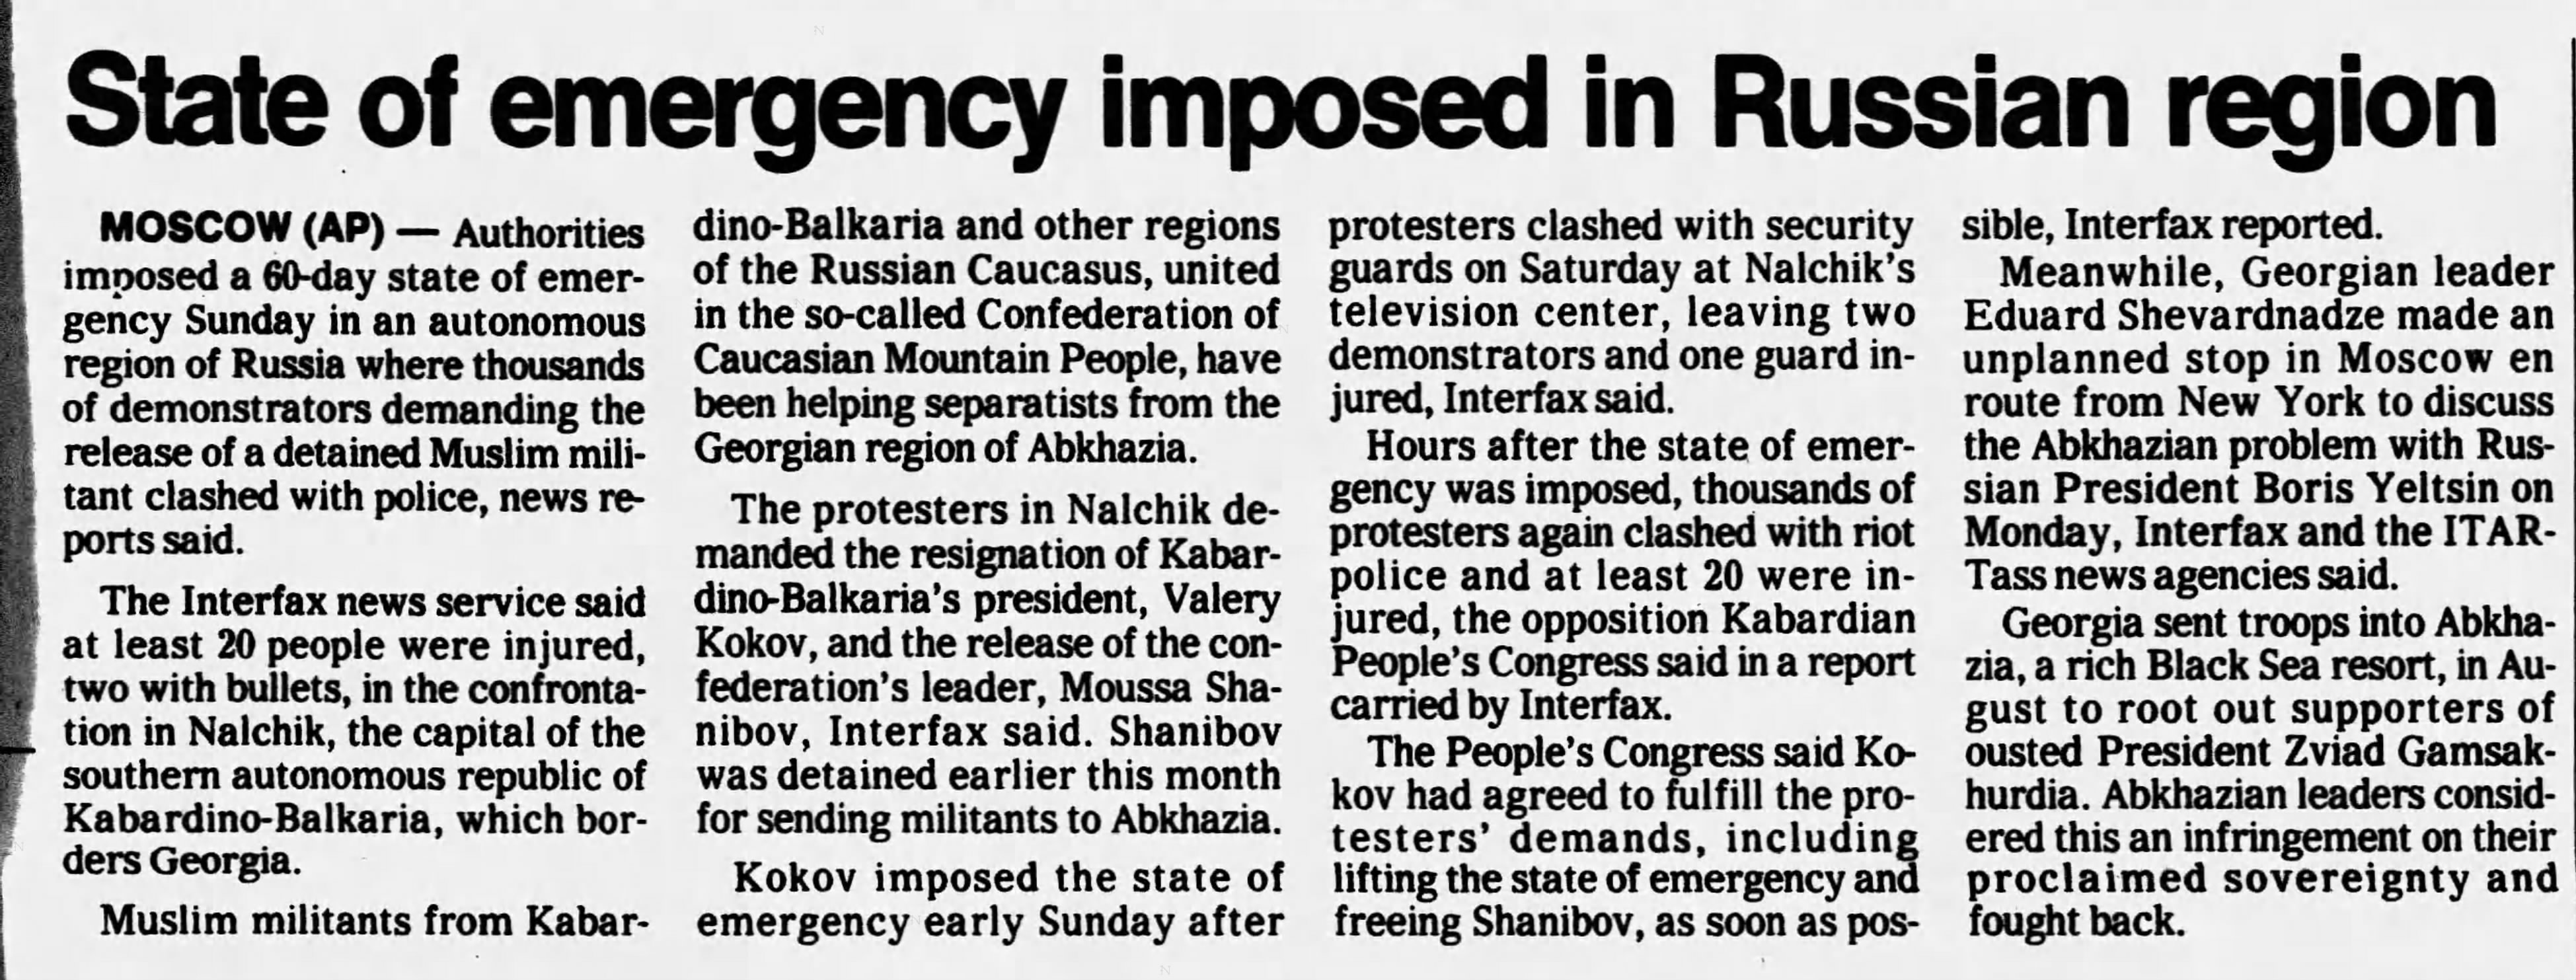 AP. State of emergency imposed in Russian region [Kabardino-Balkaria]